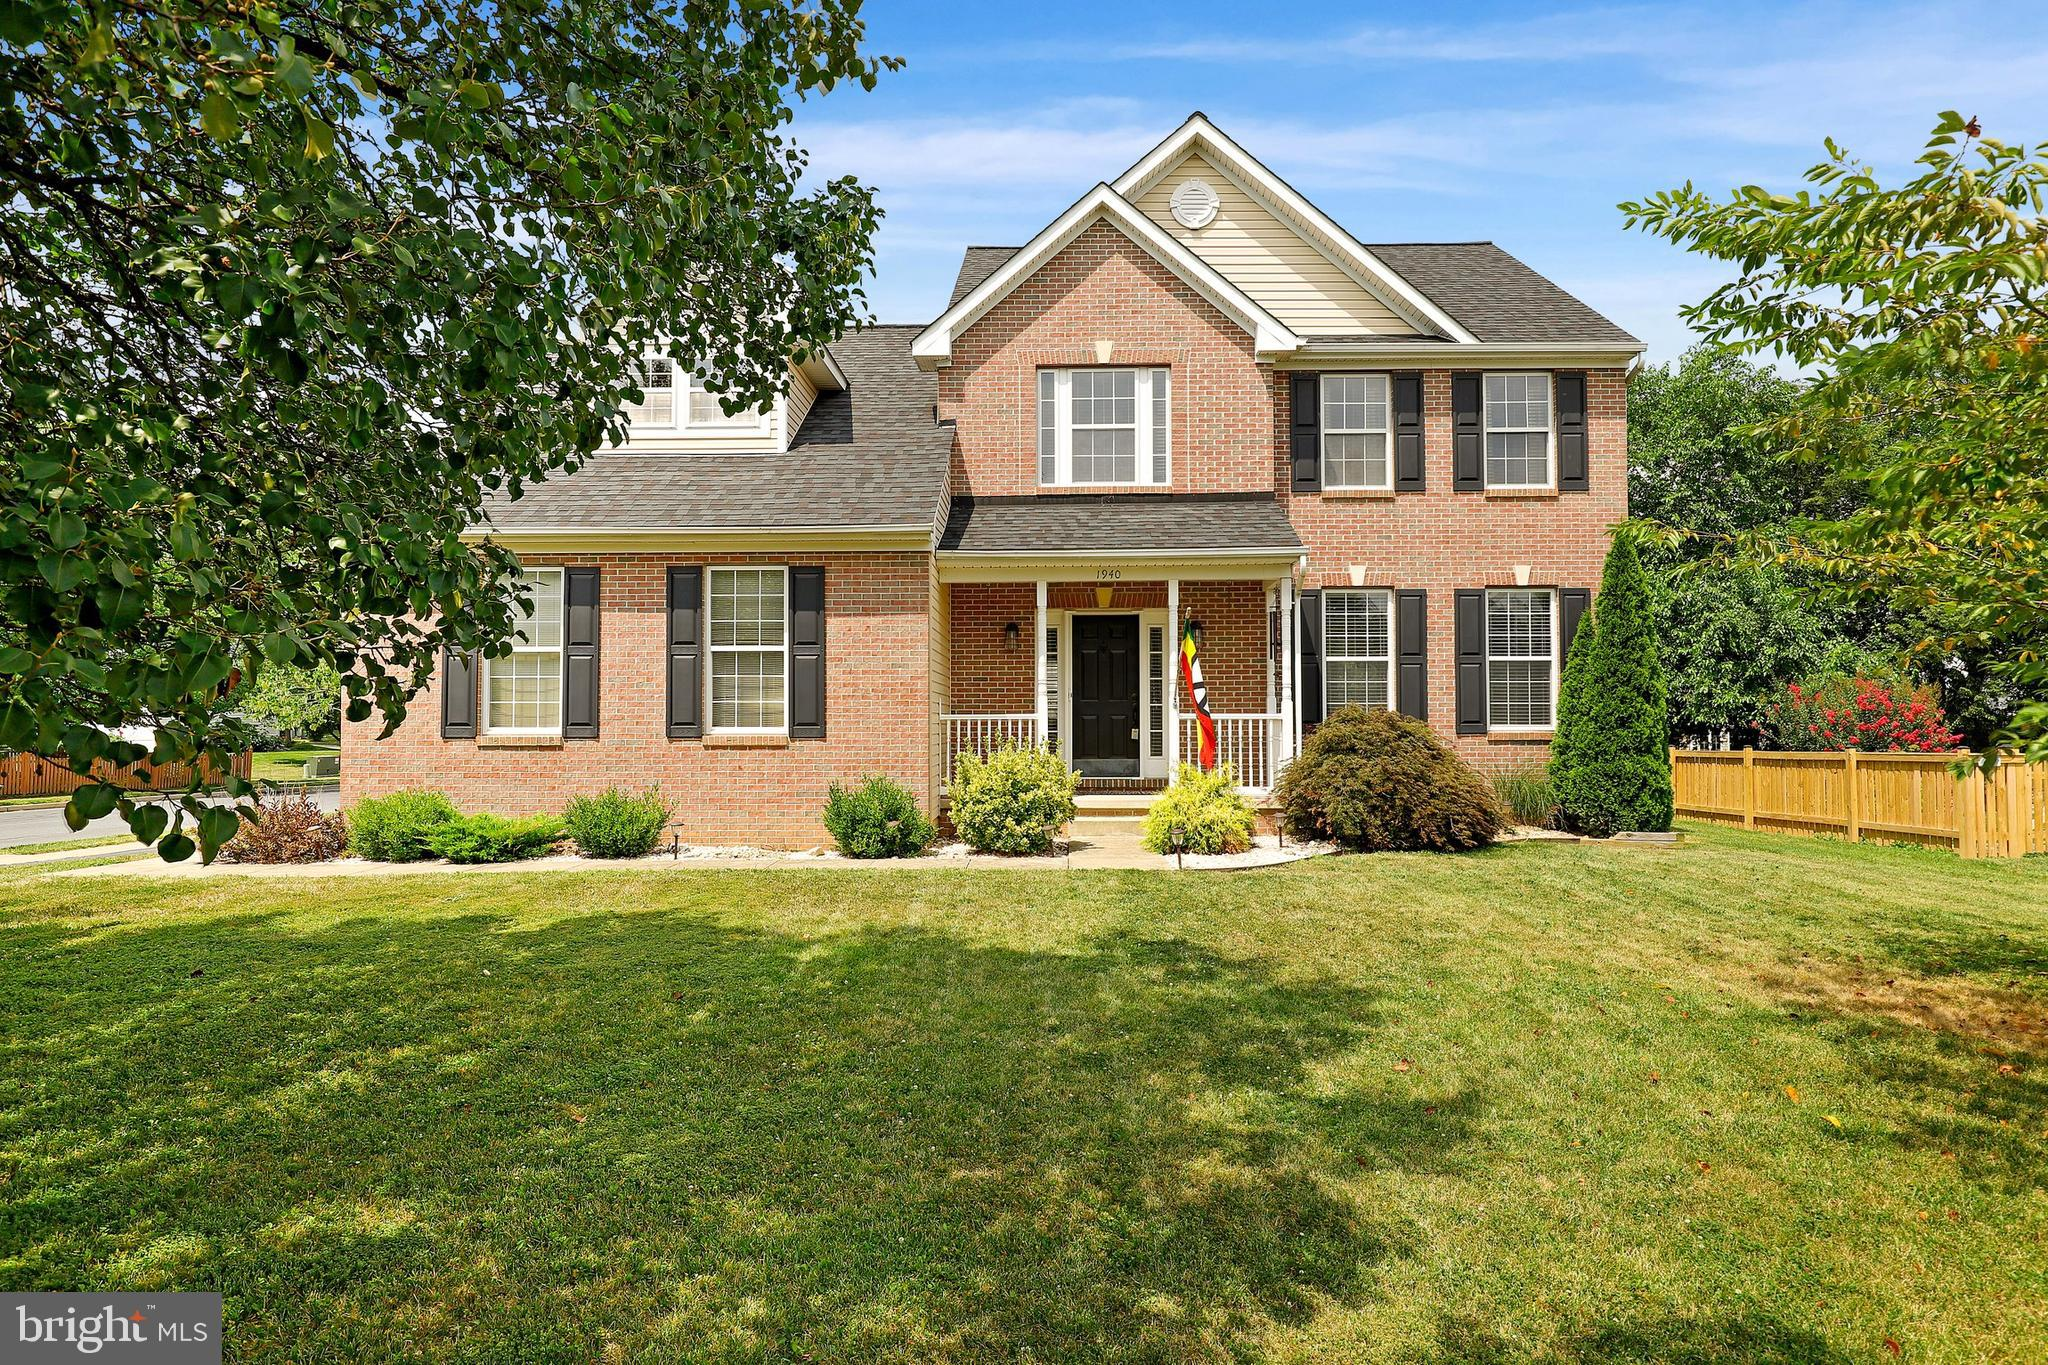 Beautiful home in North Crossing has four bedrooms, 3.5 baths and many updates. Enter to find newer